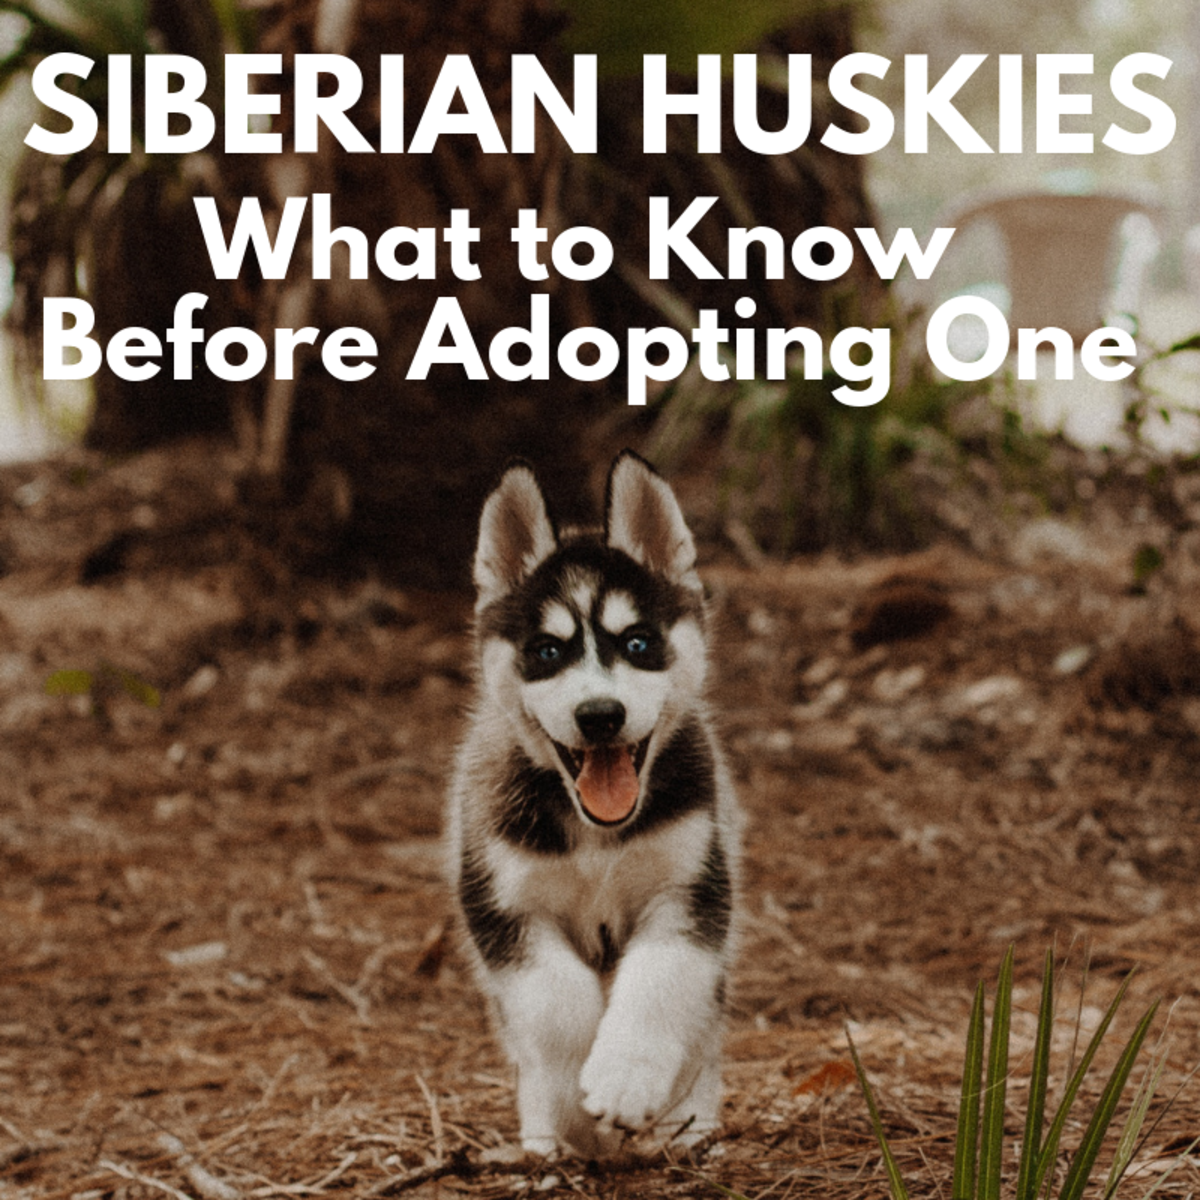 Five Things to Know Before Adopting a Siberian Husky | PetHelpful